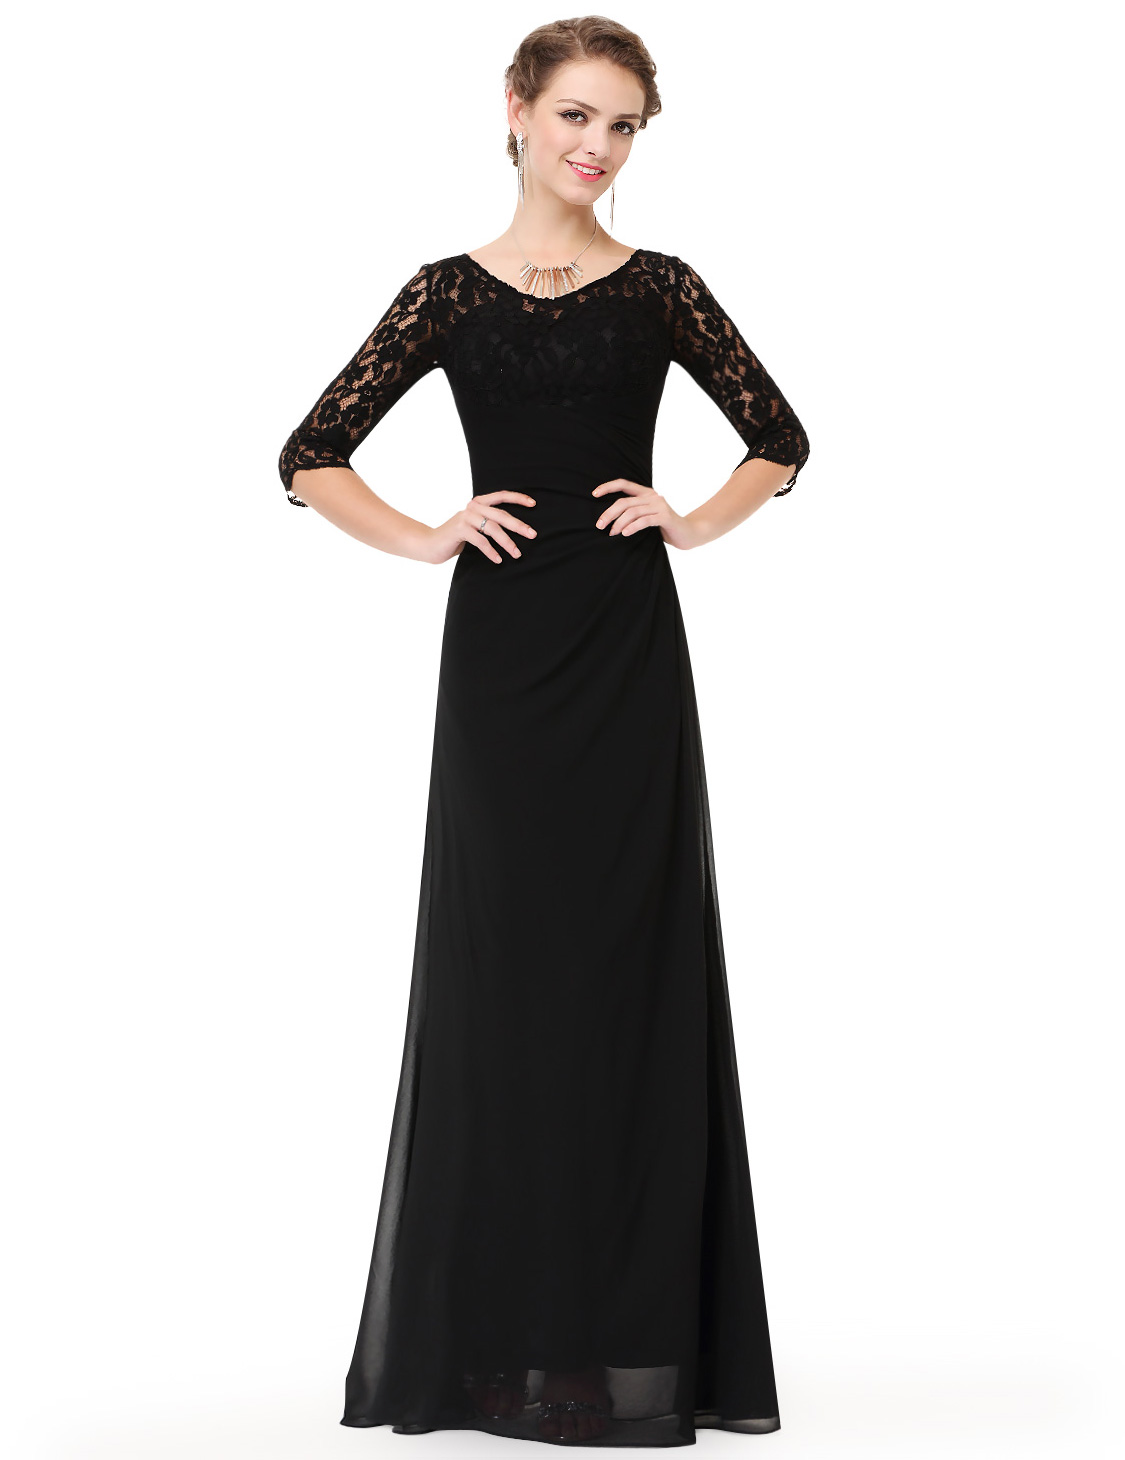 Birthday party dresses. It's your day and yours alone to shine like the beautiful birthday girl you are. So finding the right birthday dress can make your event all the more special. If you're looking for a dress that's ideal not only for your special day, but for many other occasions, check out our selection of .